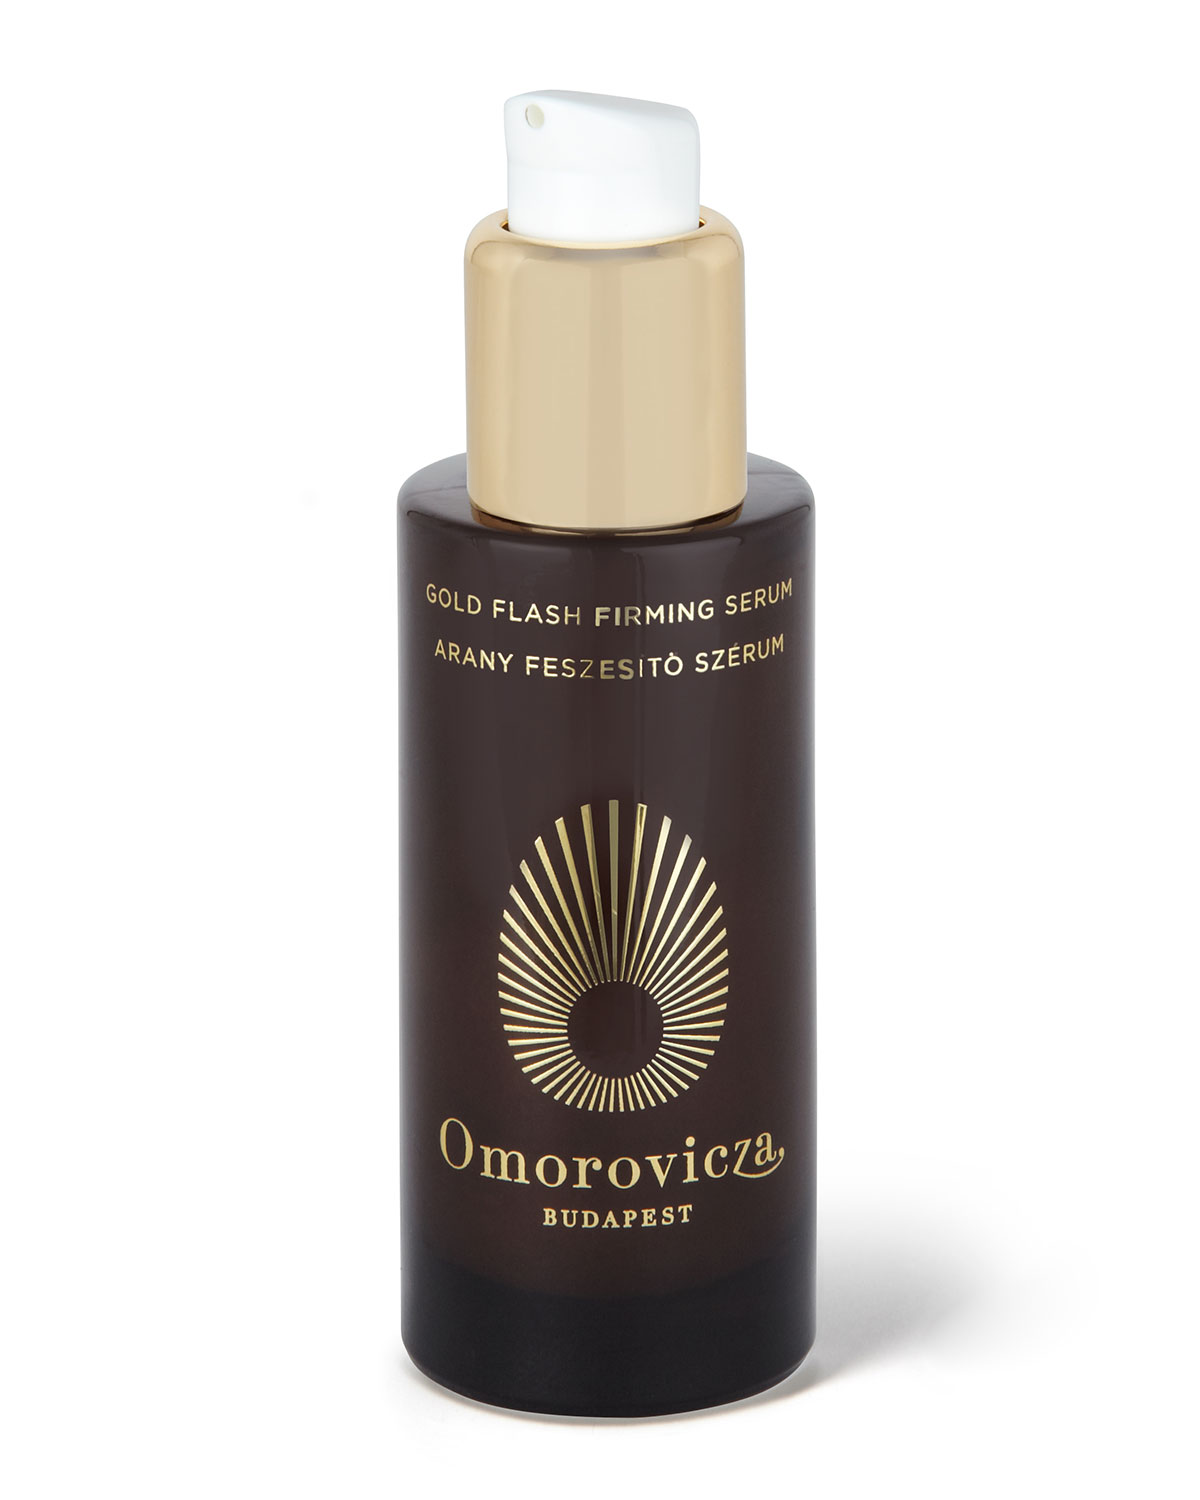 Omorovicza 1 oz. Gold Flash Firming Serum